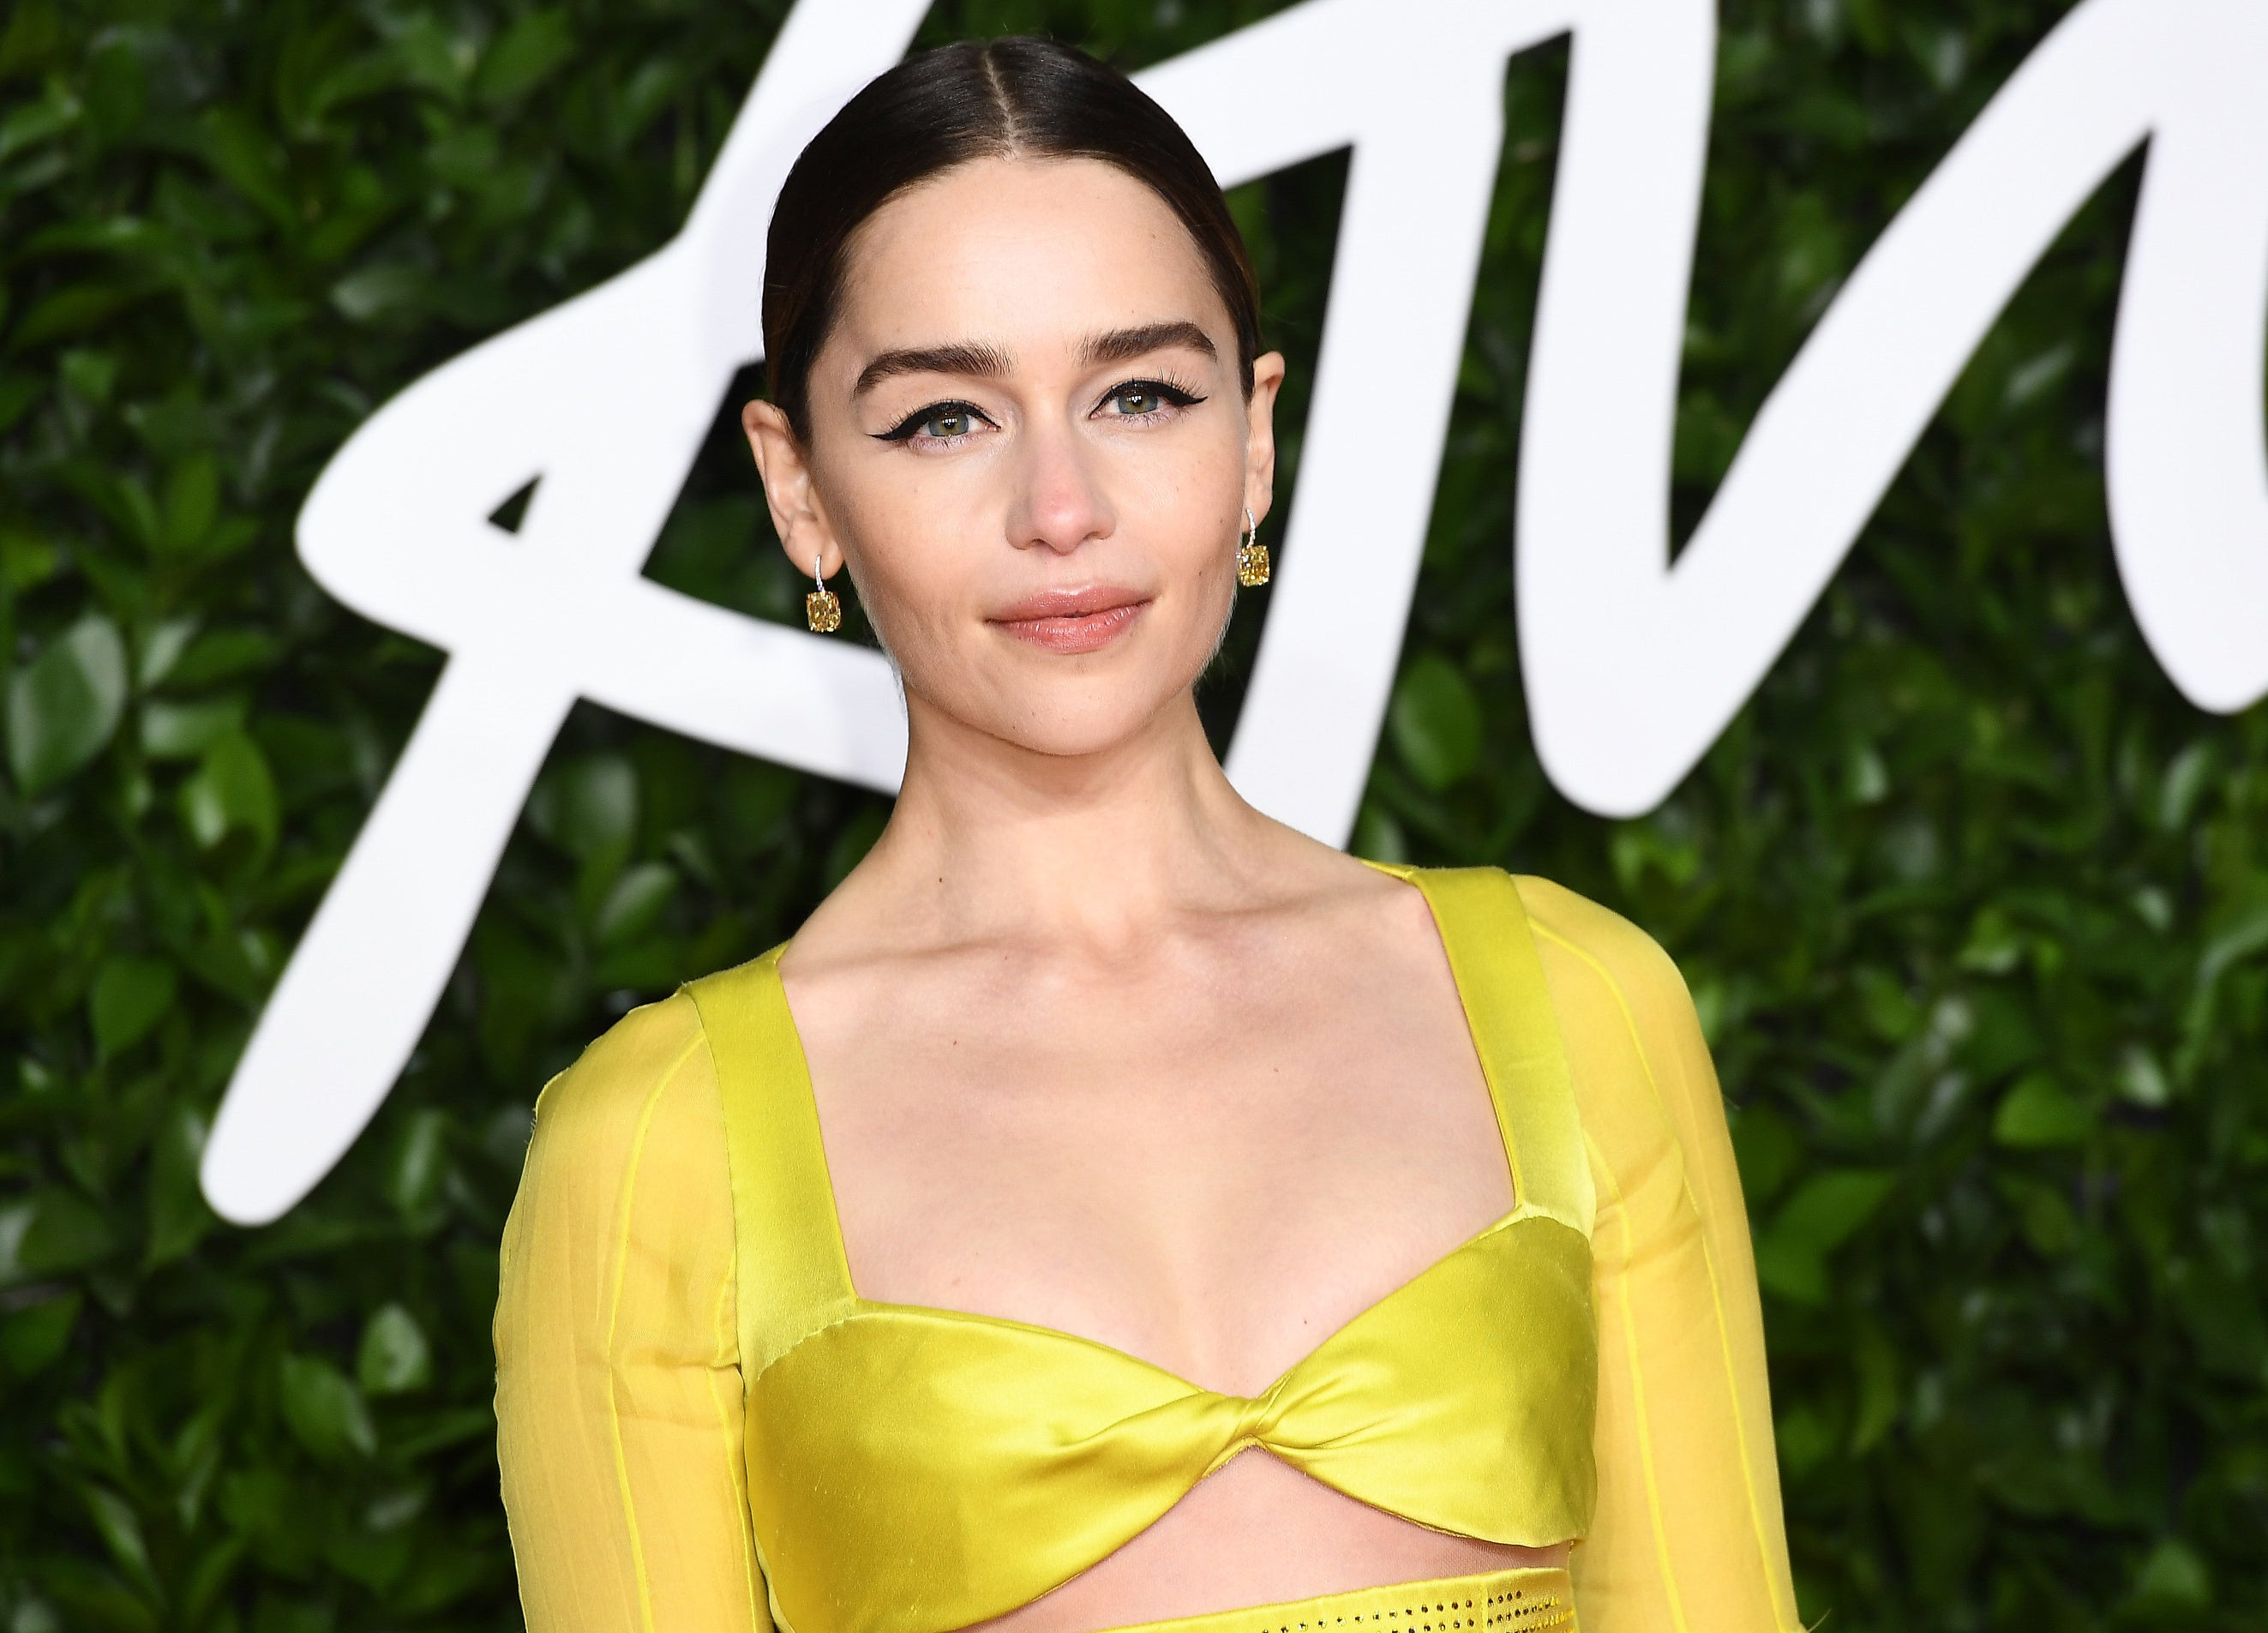 Emilia Clarke wears a bright yellow dress to an event